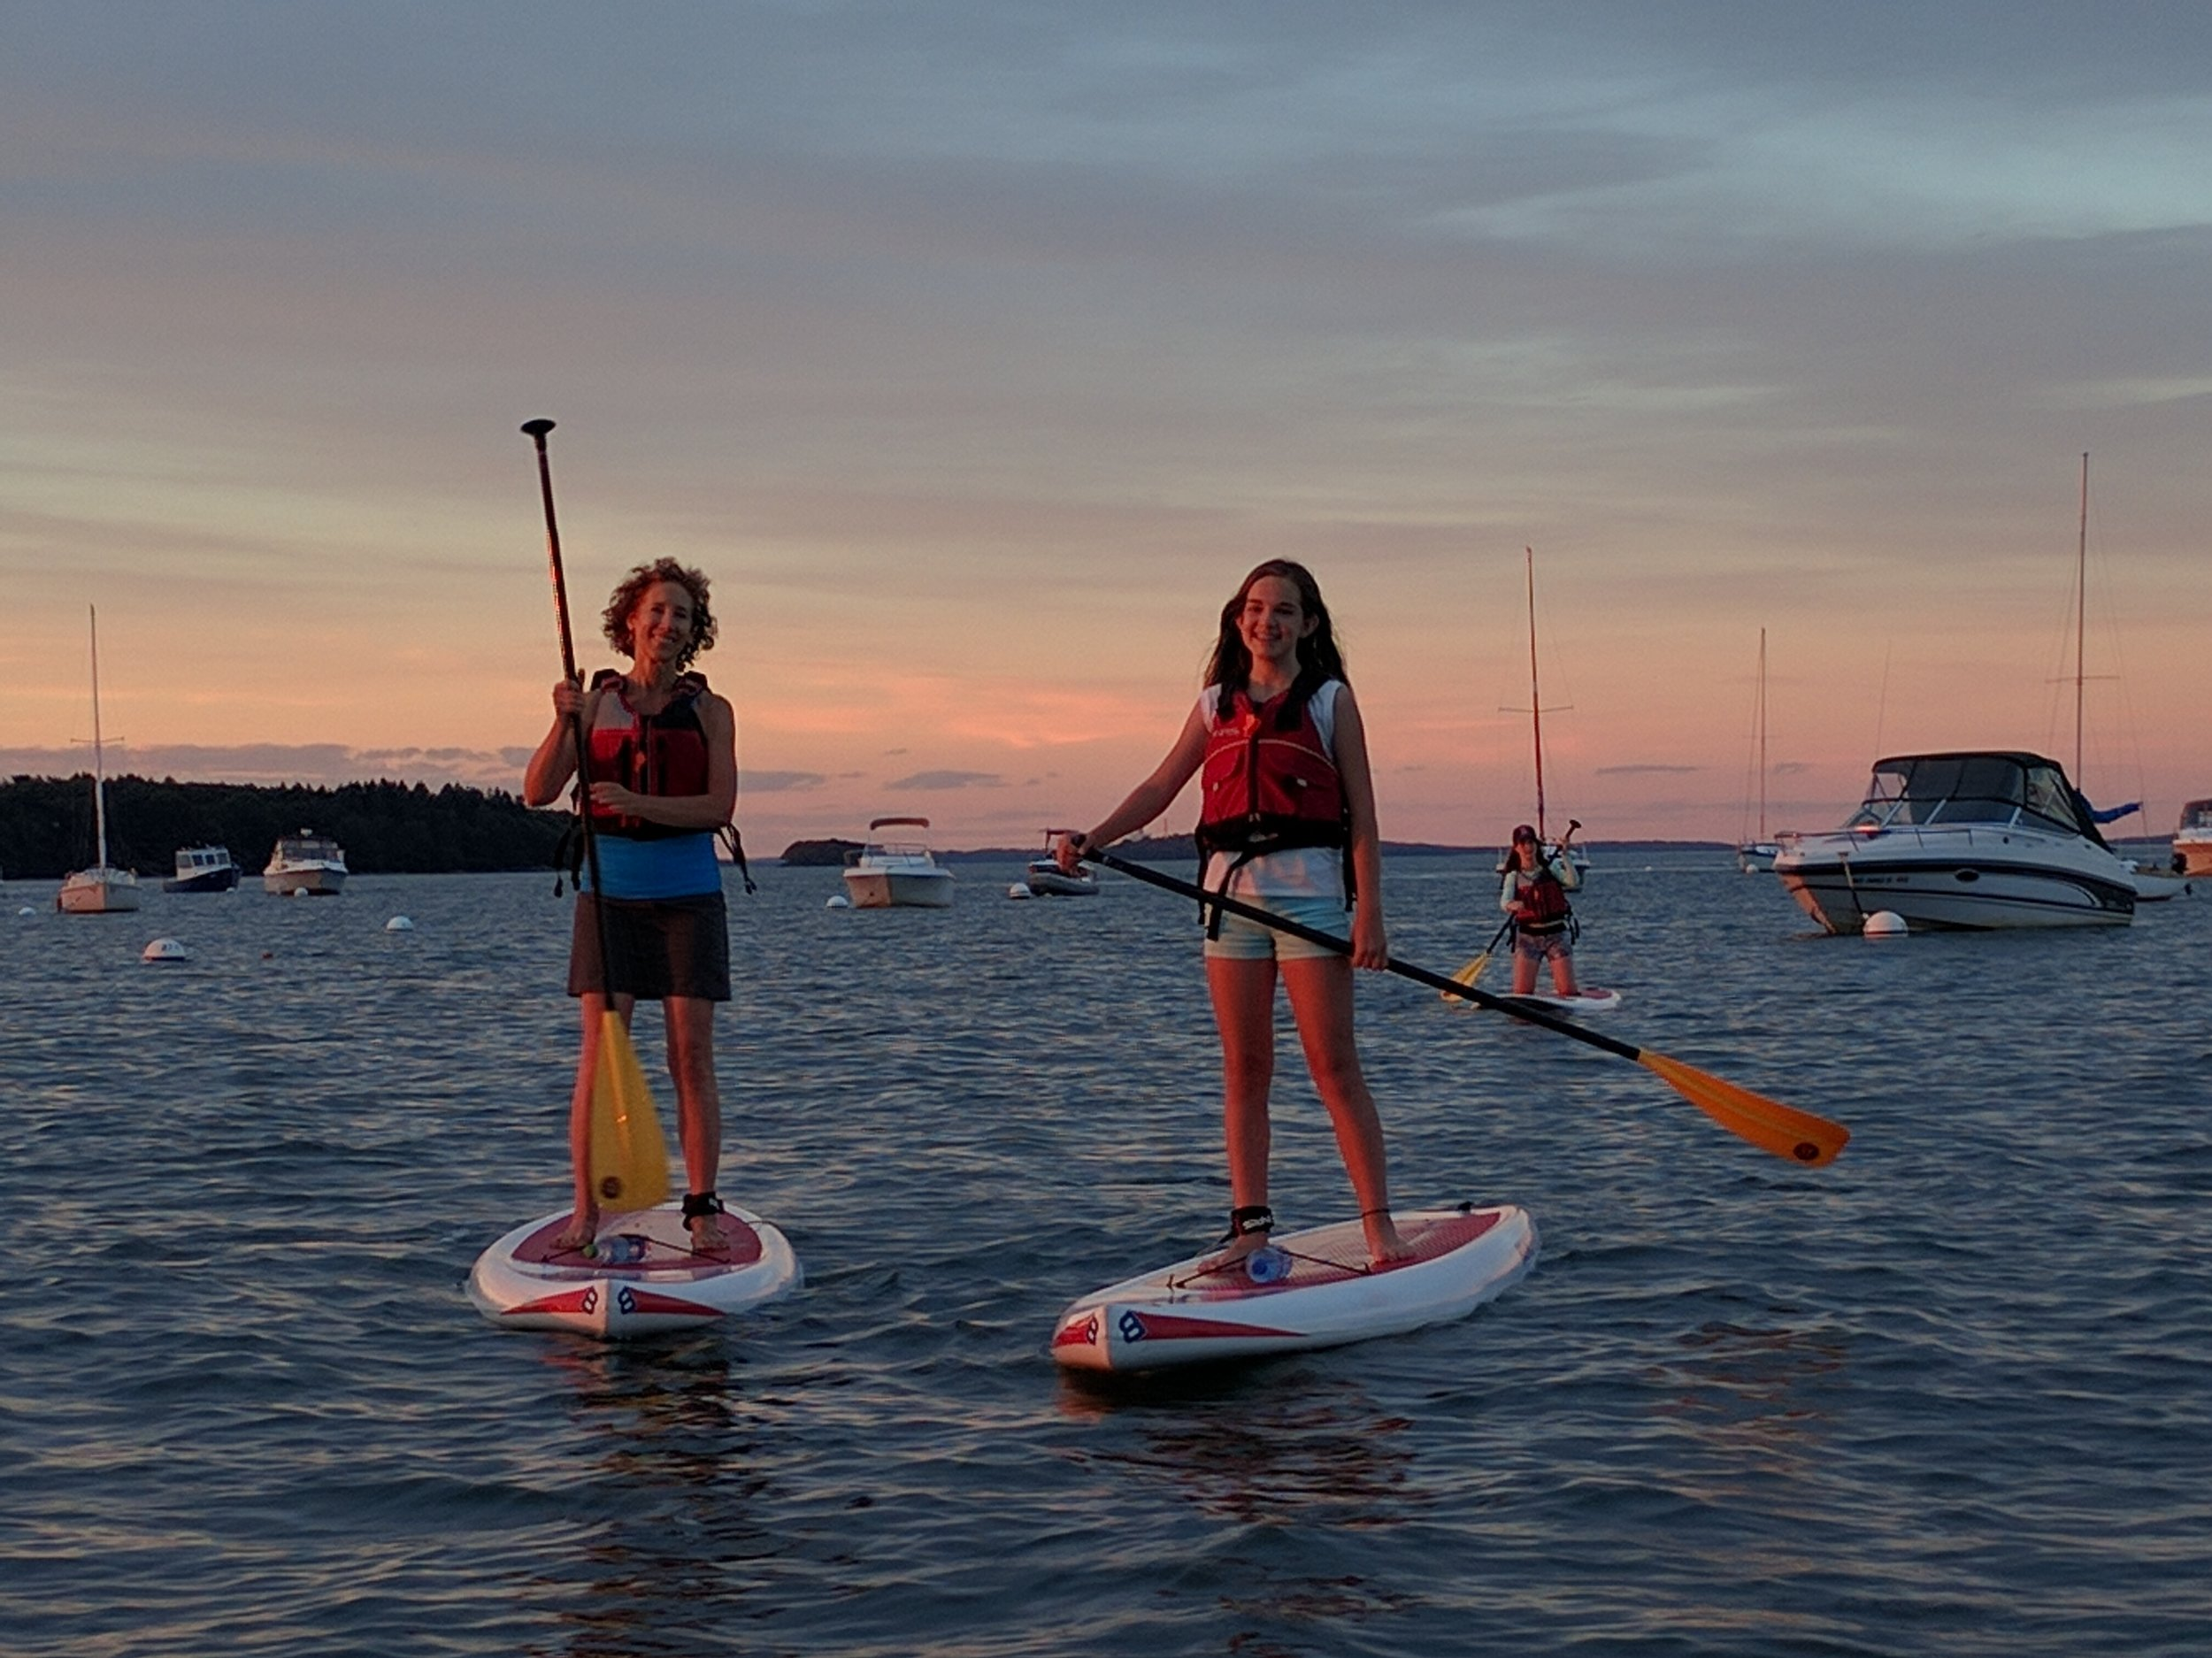 SUP Sunset Tour - Mondays, Fridays, Saturdays or by request(start time varies with sunset; click below for timing)1.5 hours, $40 per person